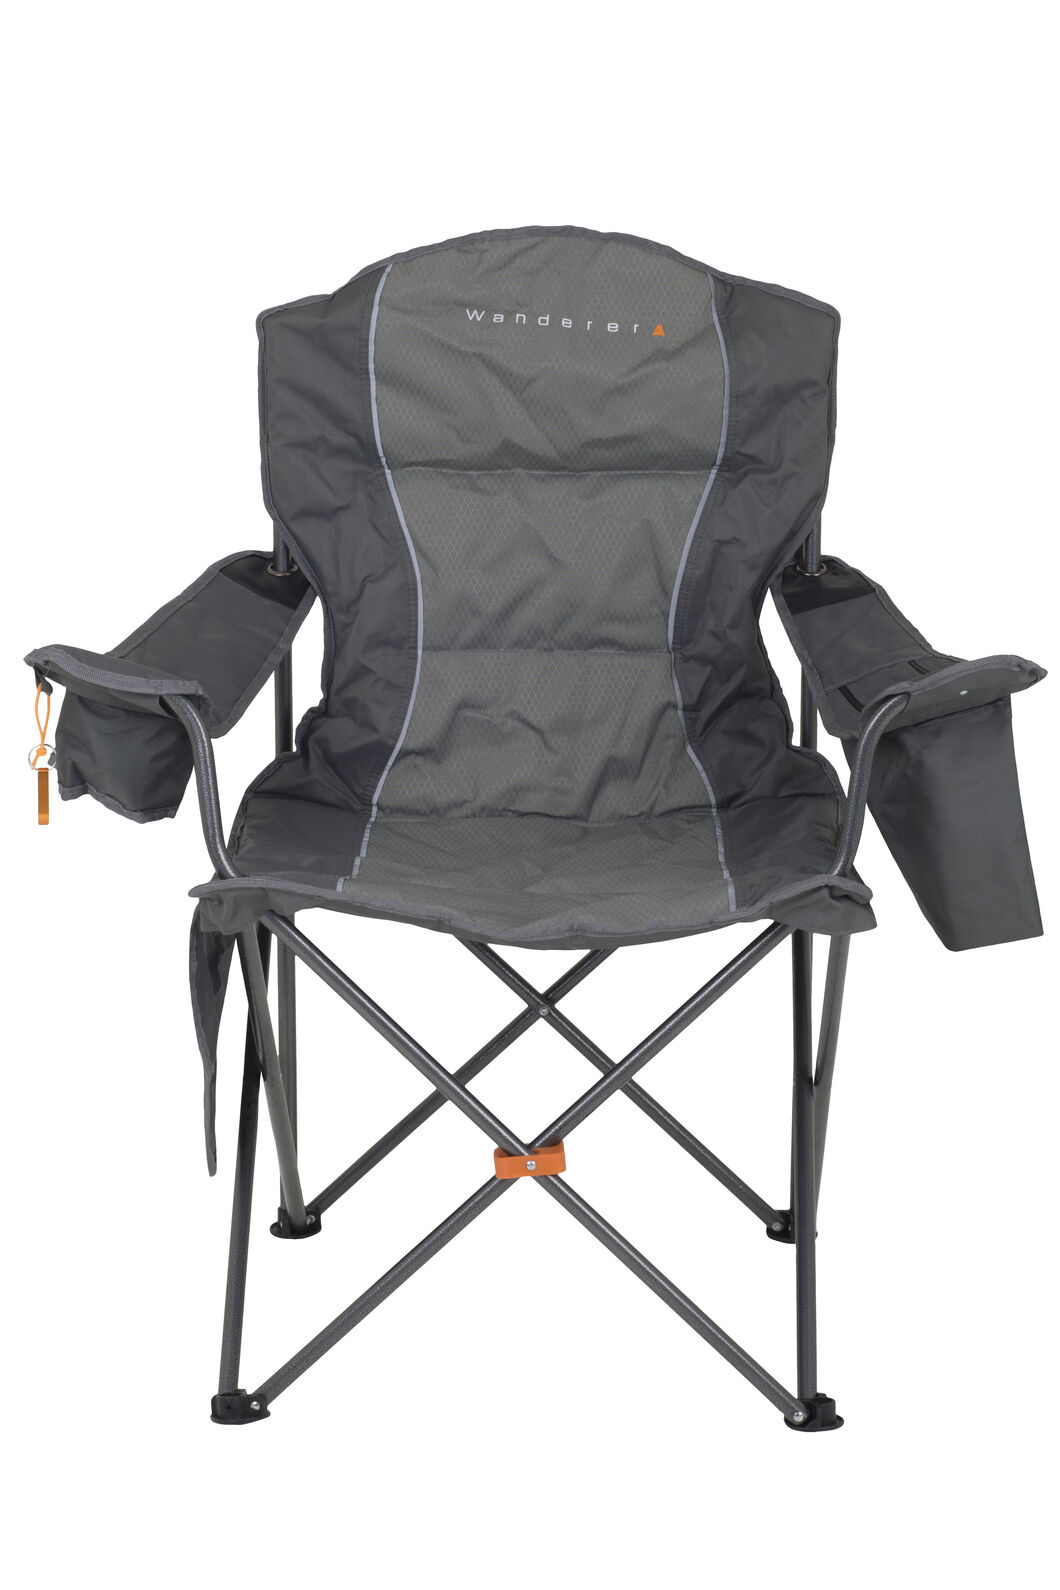 Wanderer Premium Series Cooler Arm Chair, None, hi-res